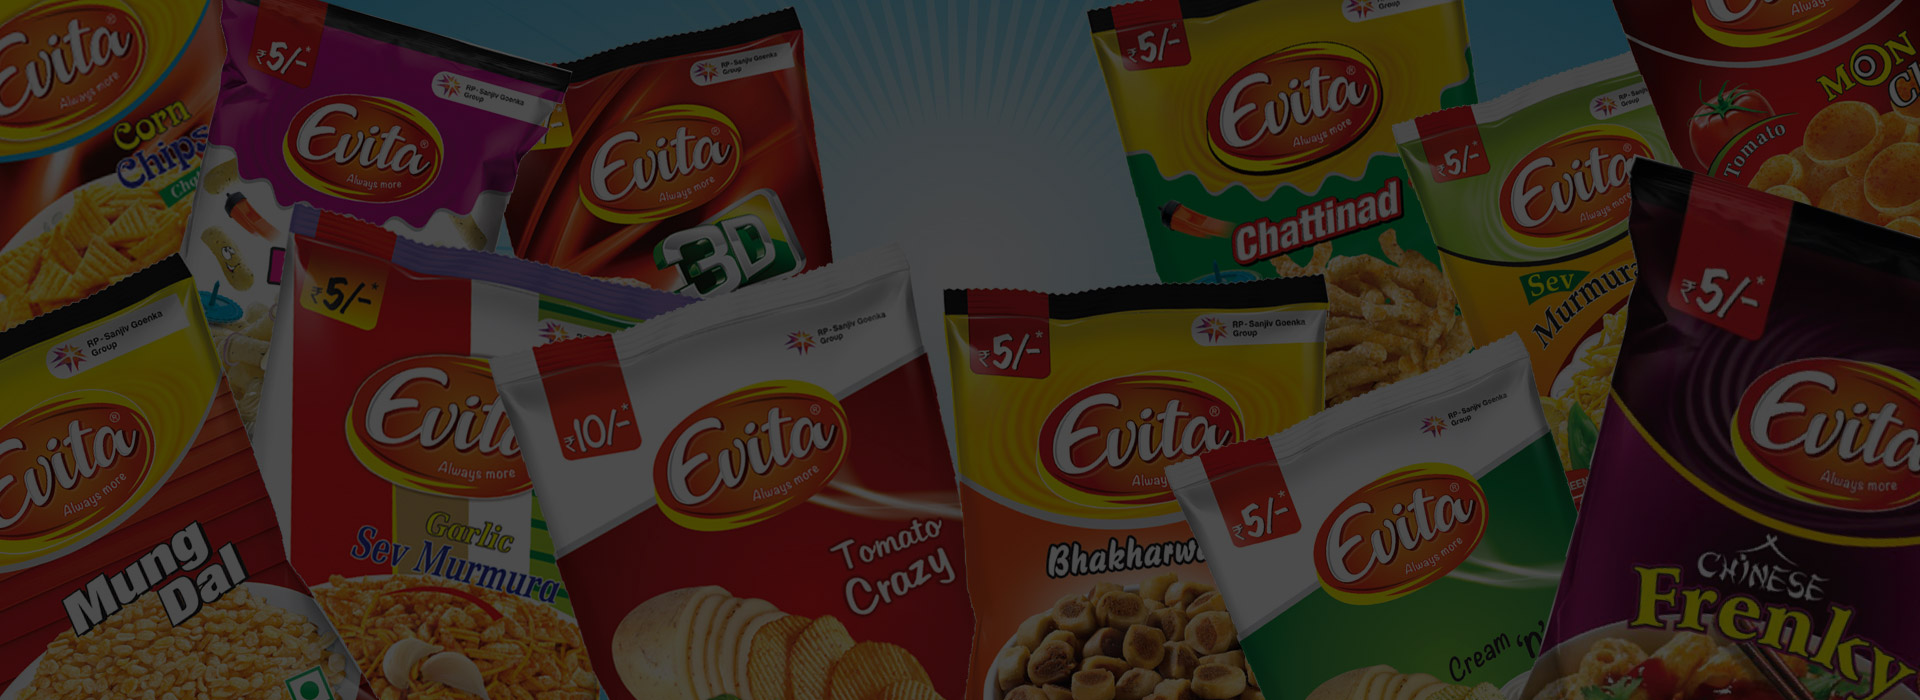 The FMCG business was consolidated with the acquisition of Apricot Foods, which sells packaged snacks under the brand name Evita.